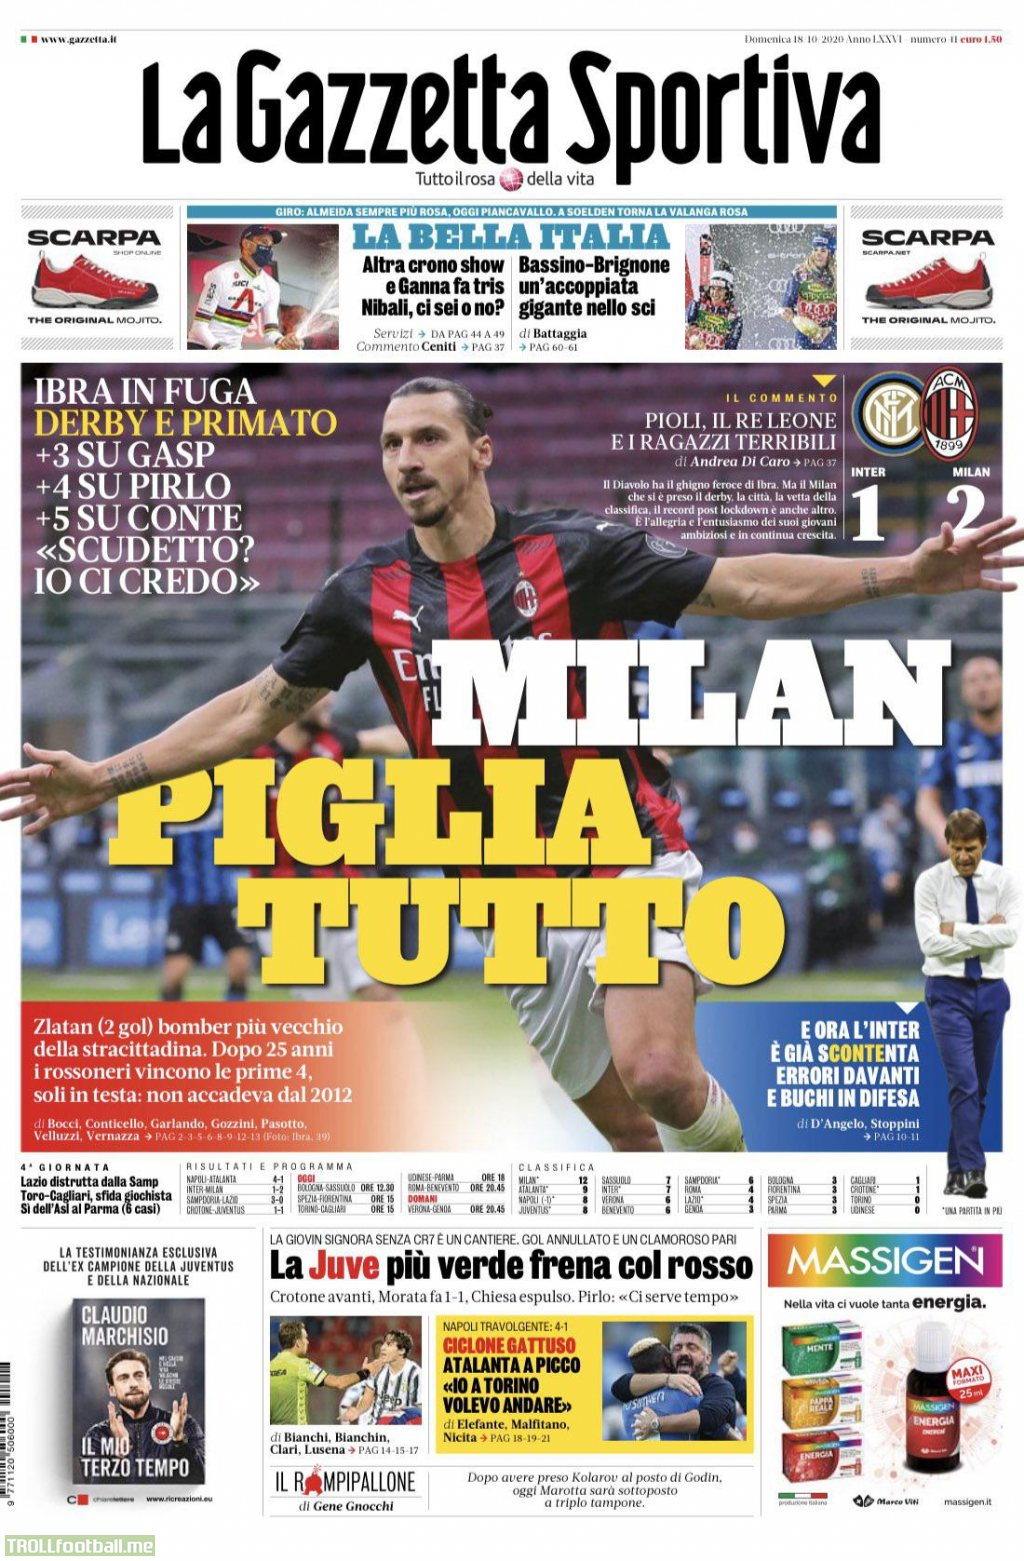 Milan takes everything, Milan win the derby & top the table, +3 from Gasp,+4 from Pirlo, +5 from Conte